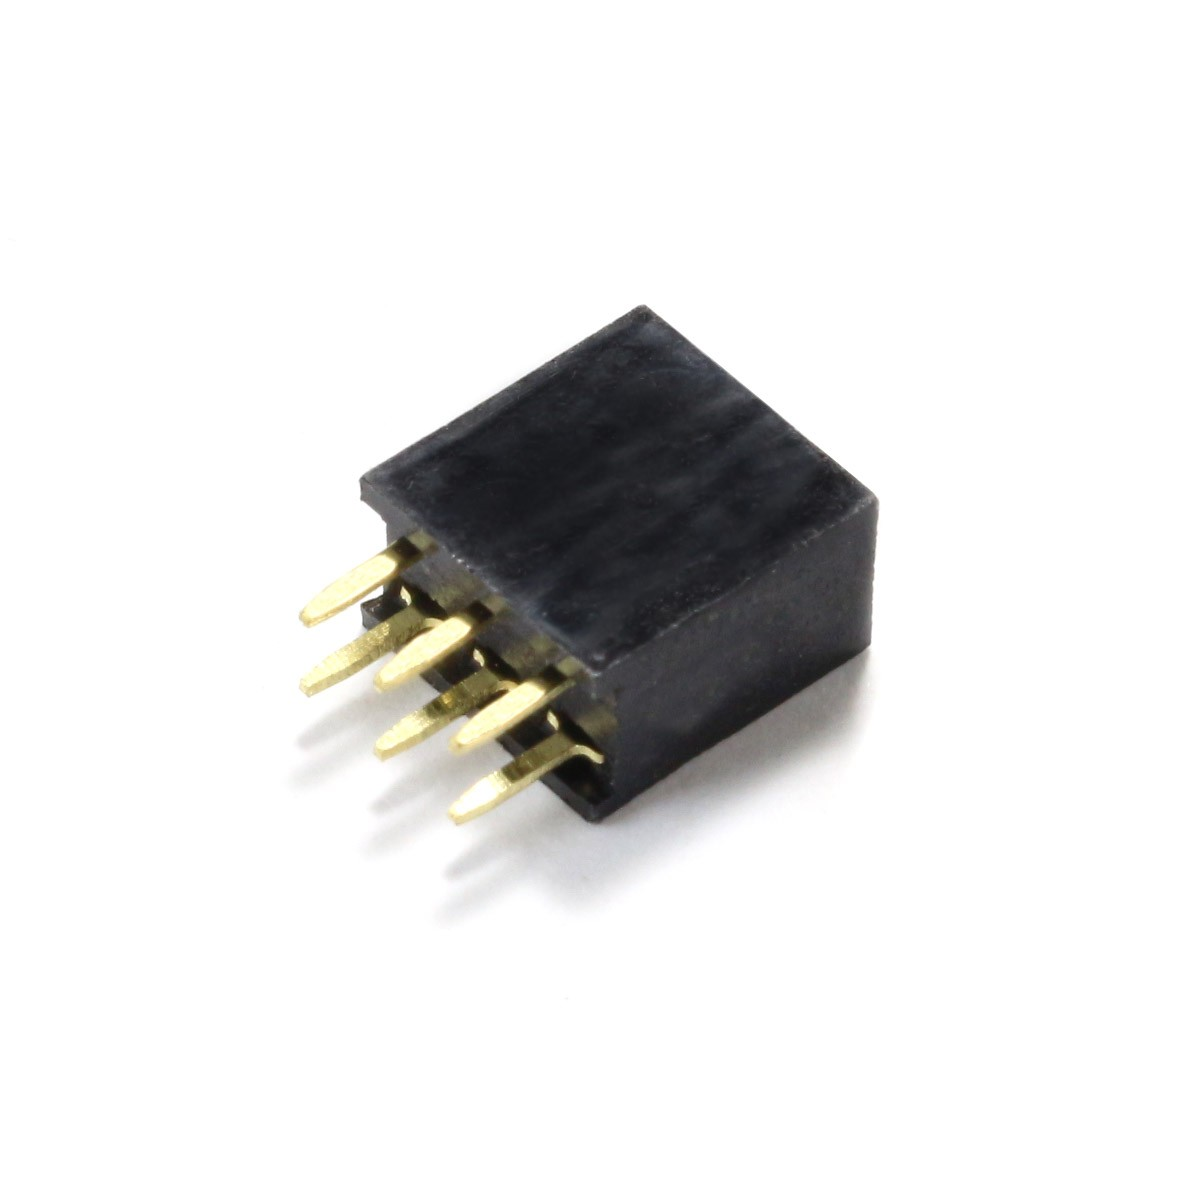 Male / Female Pin Header Straight Connector 2x3 Pins 2.54mm Spacing